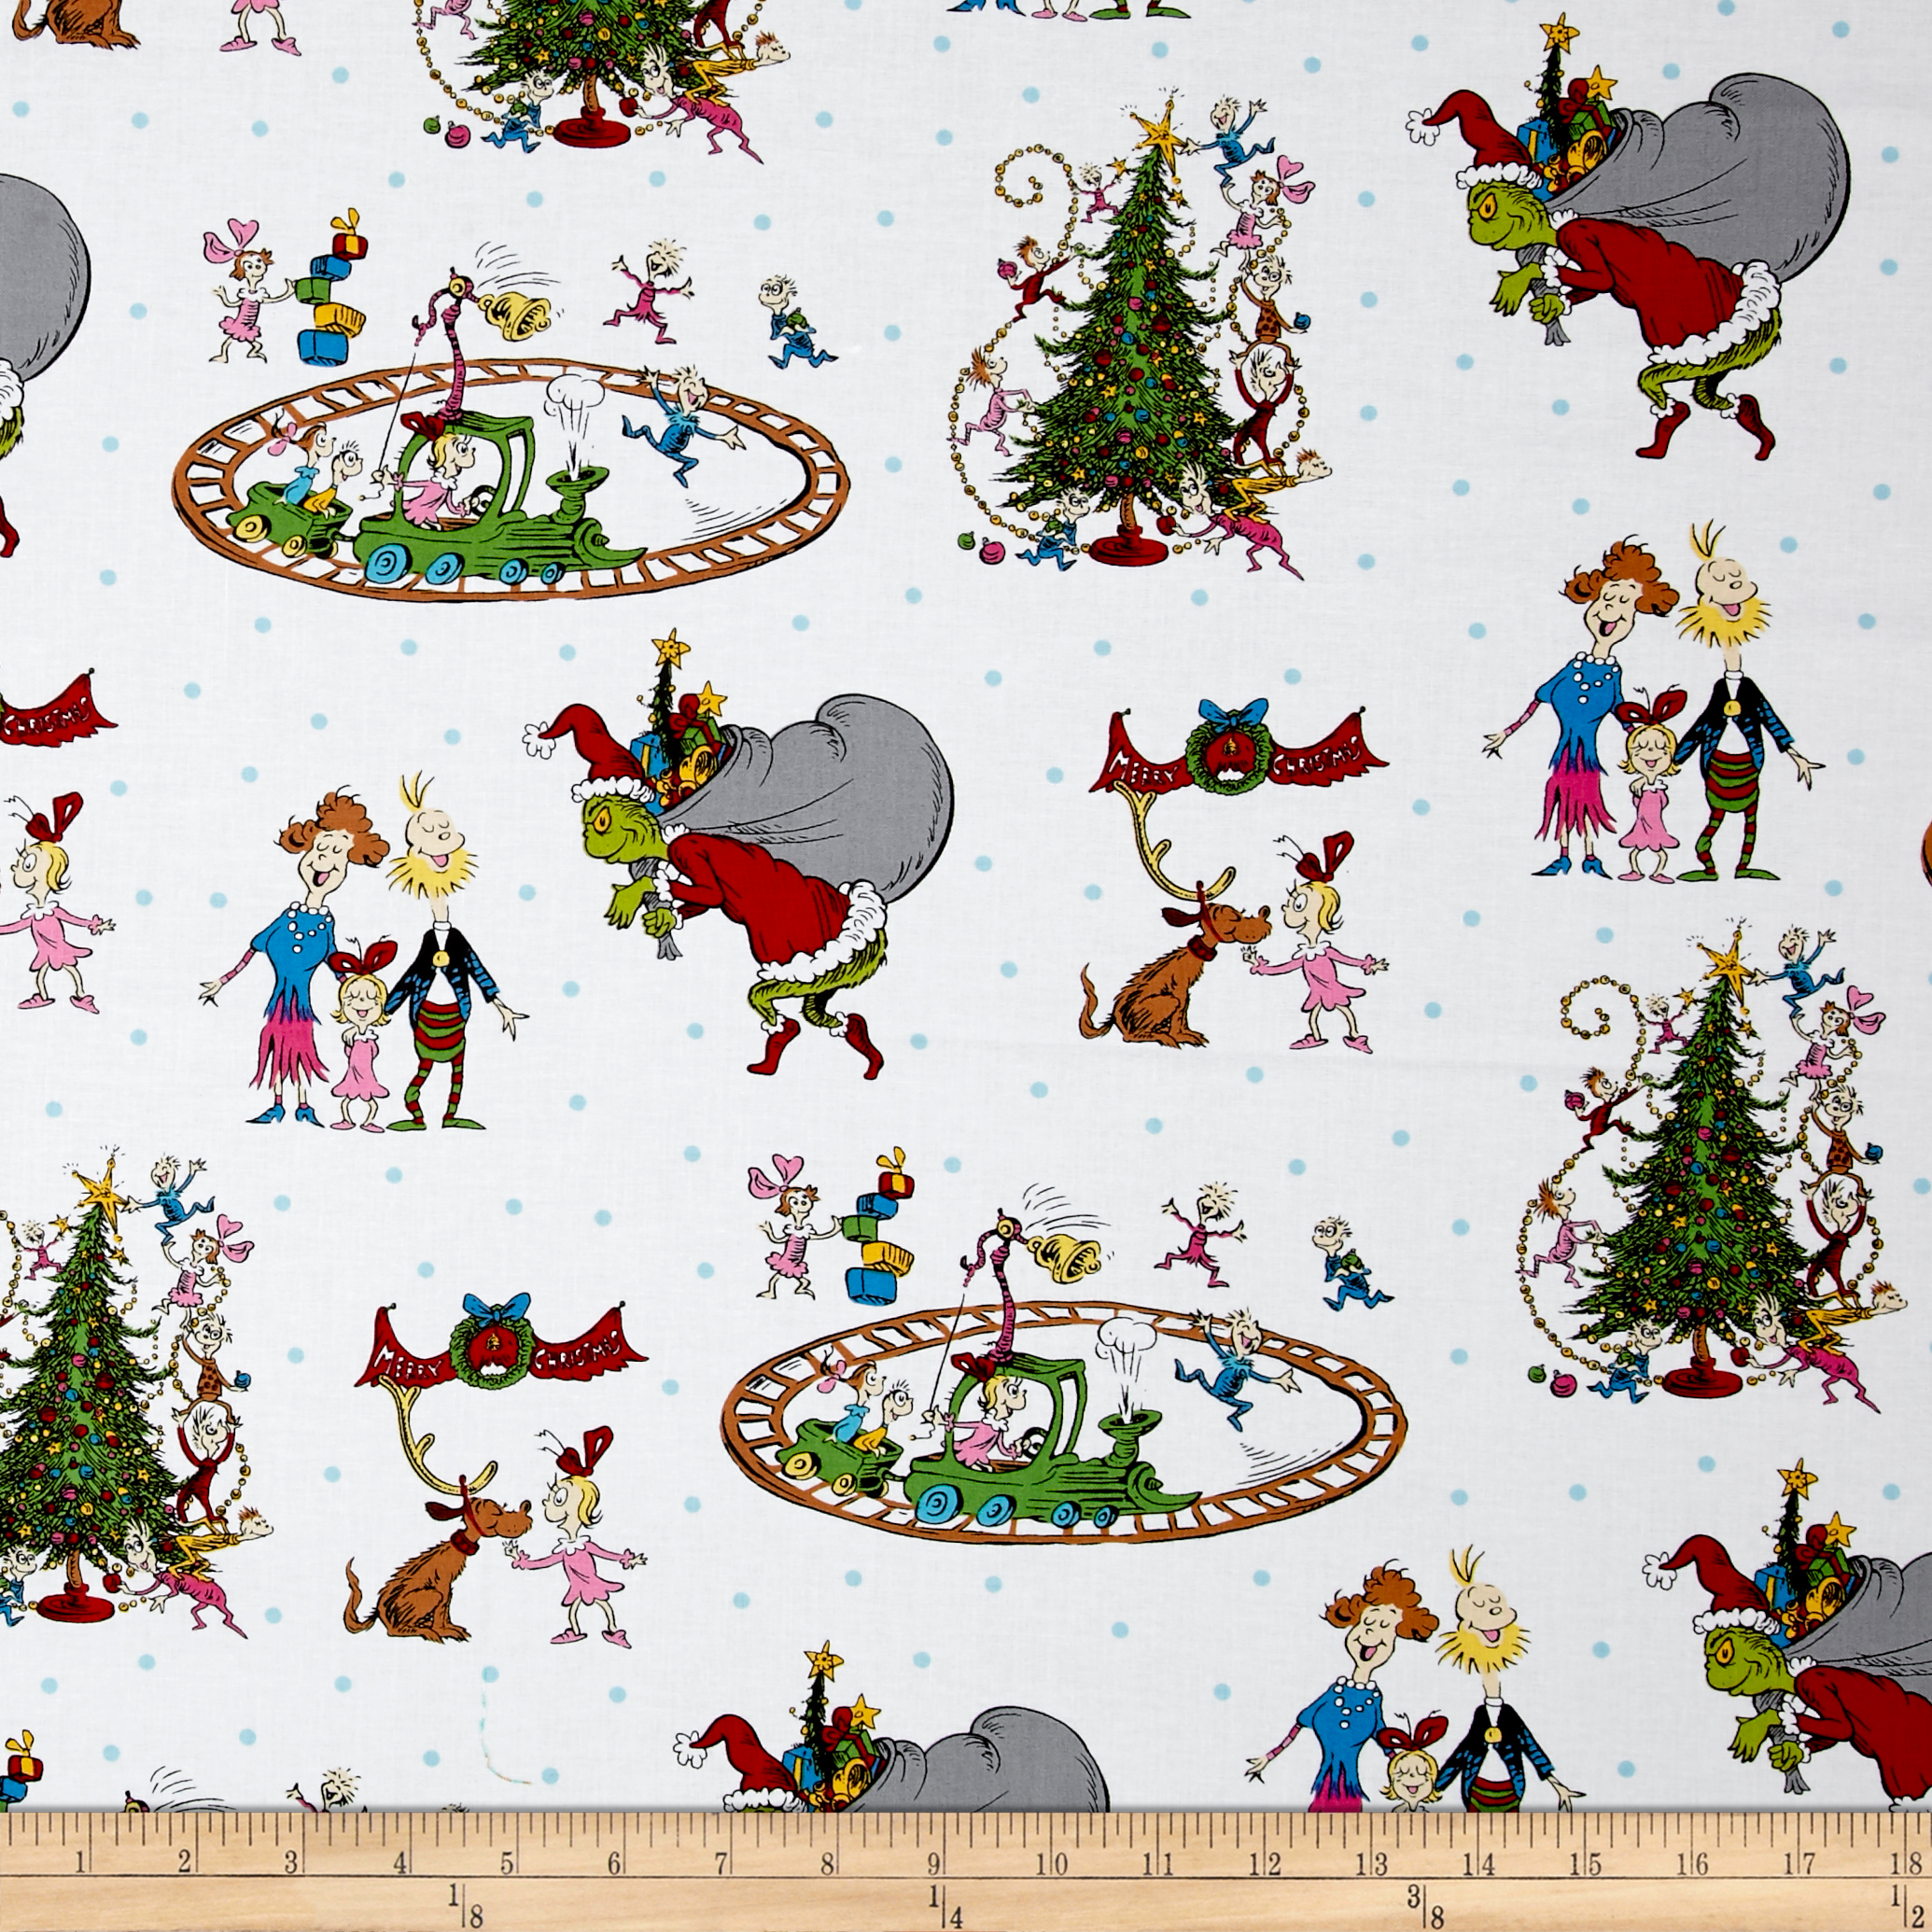 How The Grinch Stole Christmas Grinch Collage White Fabric By The Yard